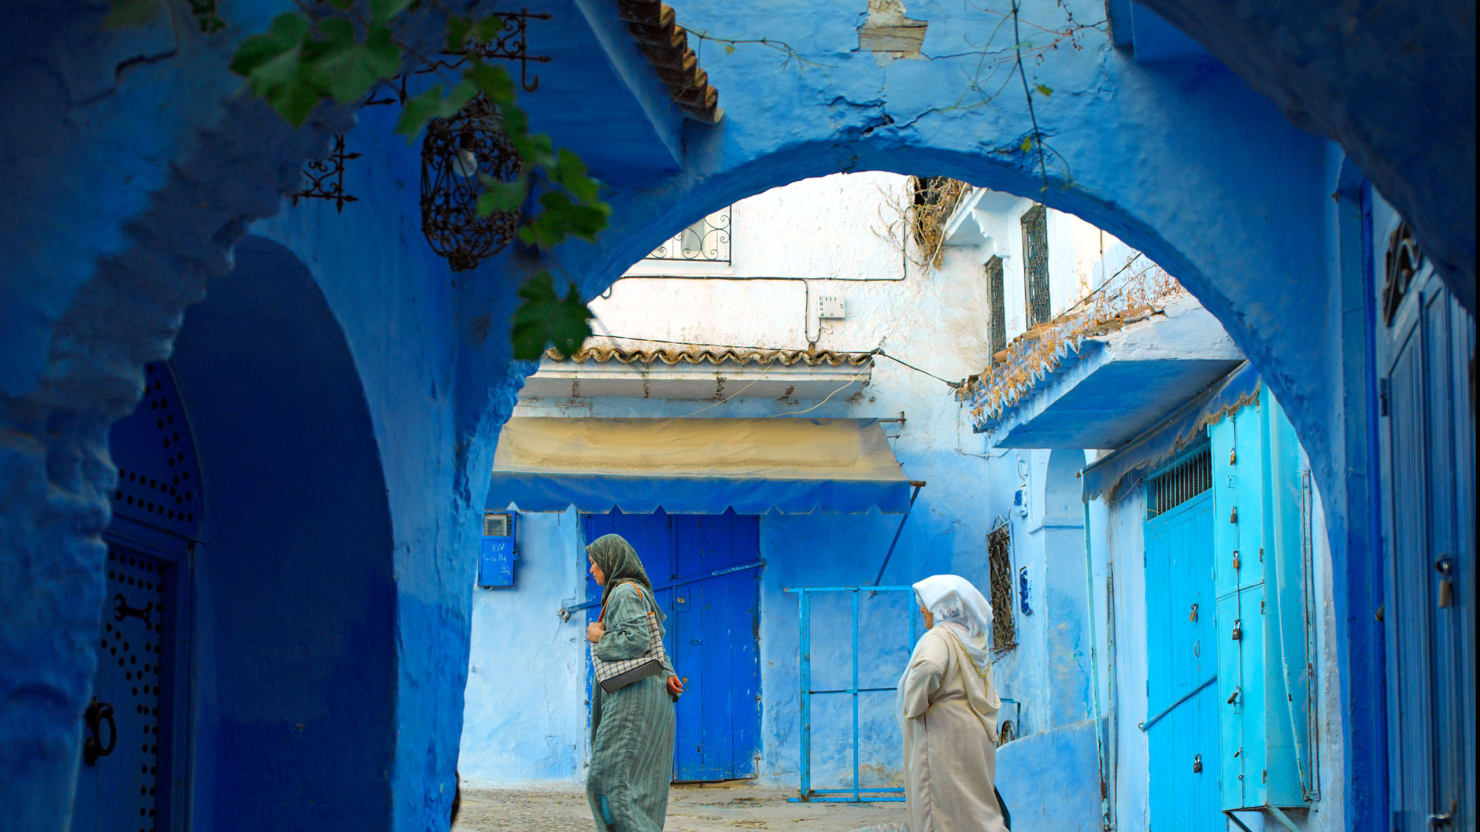 Moroccos Secret AllBlue City - Old town morocco entirely blue